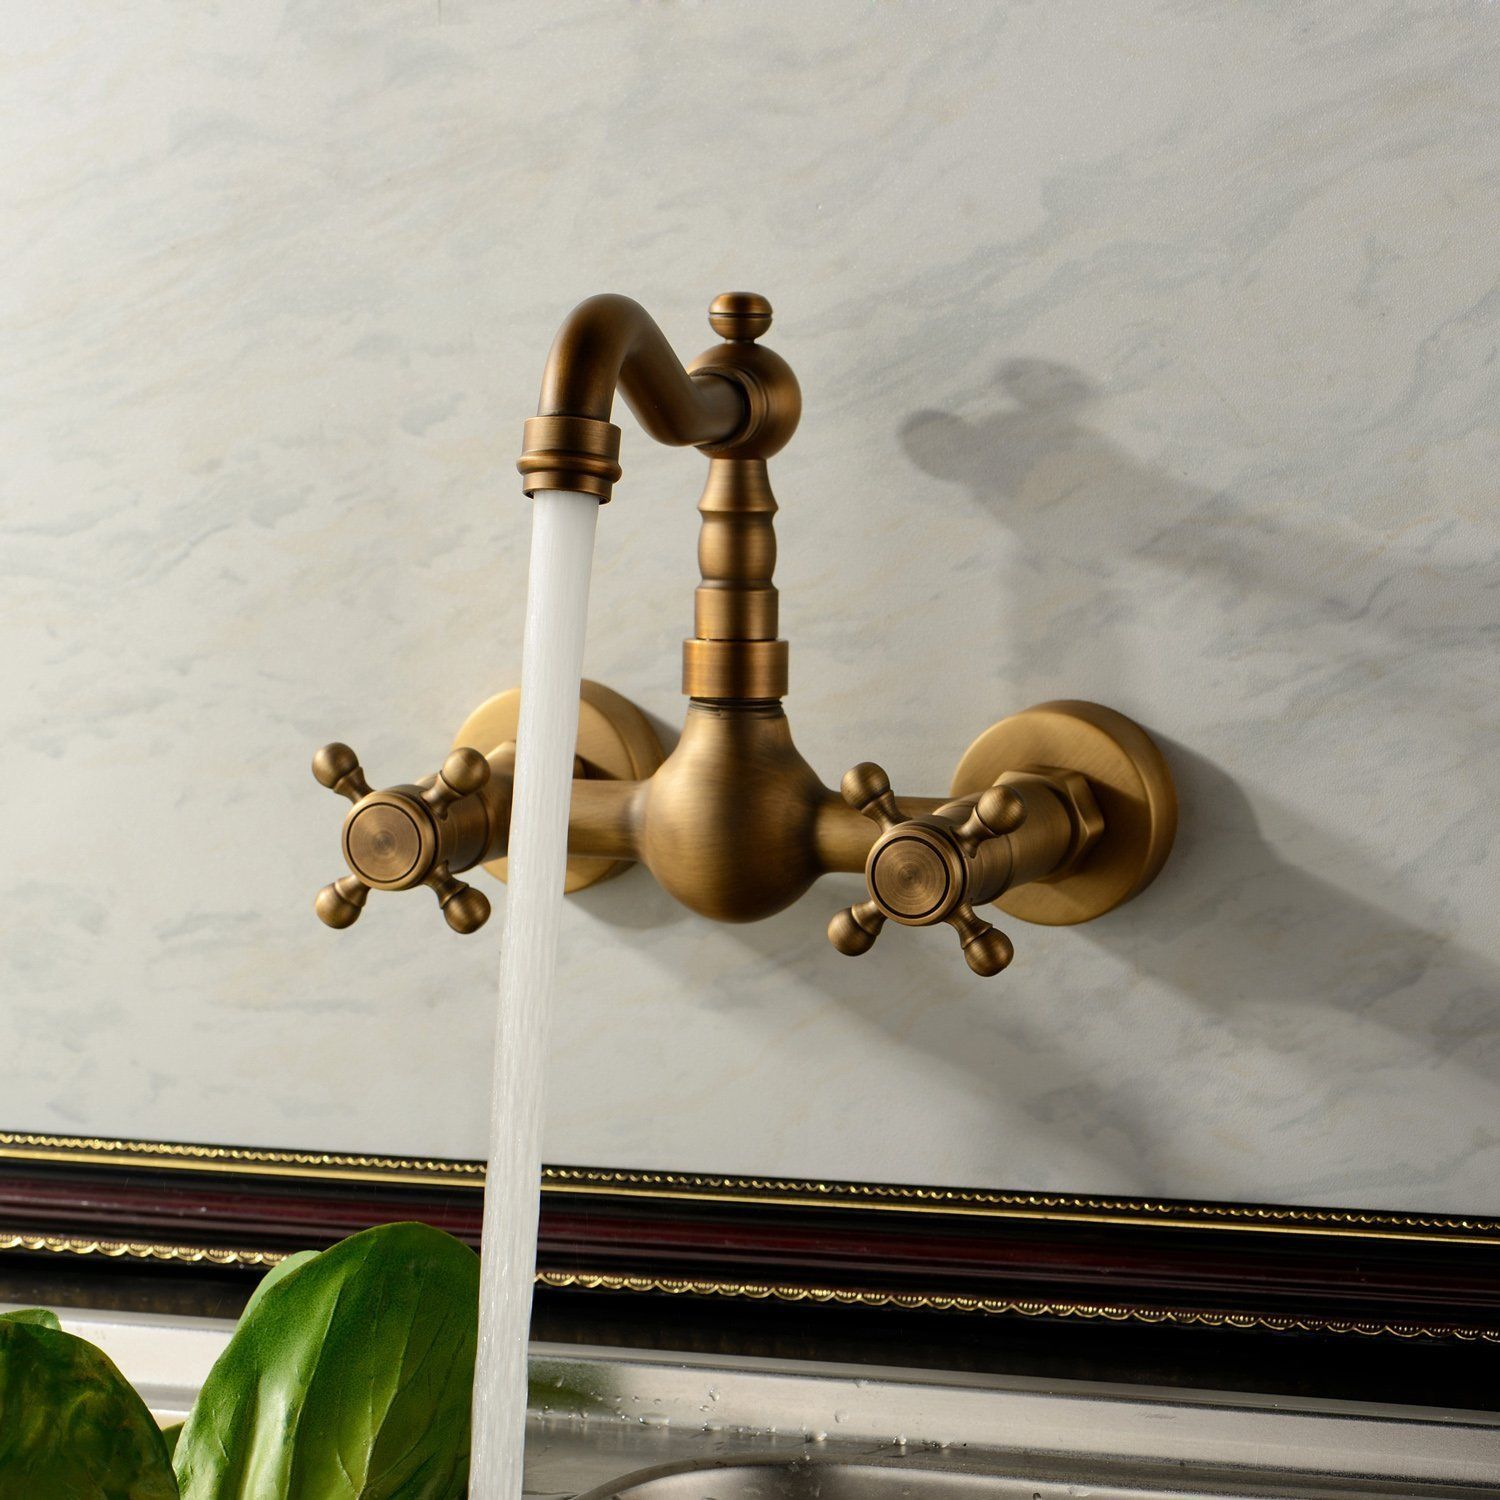 Antique Brass Wall Mounted Swivel Spout Bathroom Sink Faucet Double Handle Mixer Tap Wall Mounted ZD515 in Basin Faucets from Home Improvement